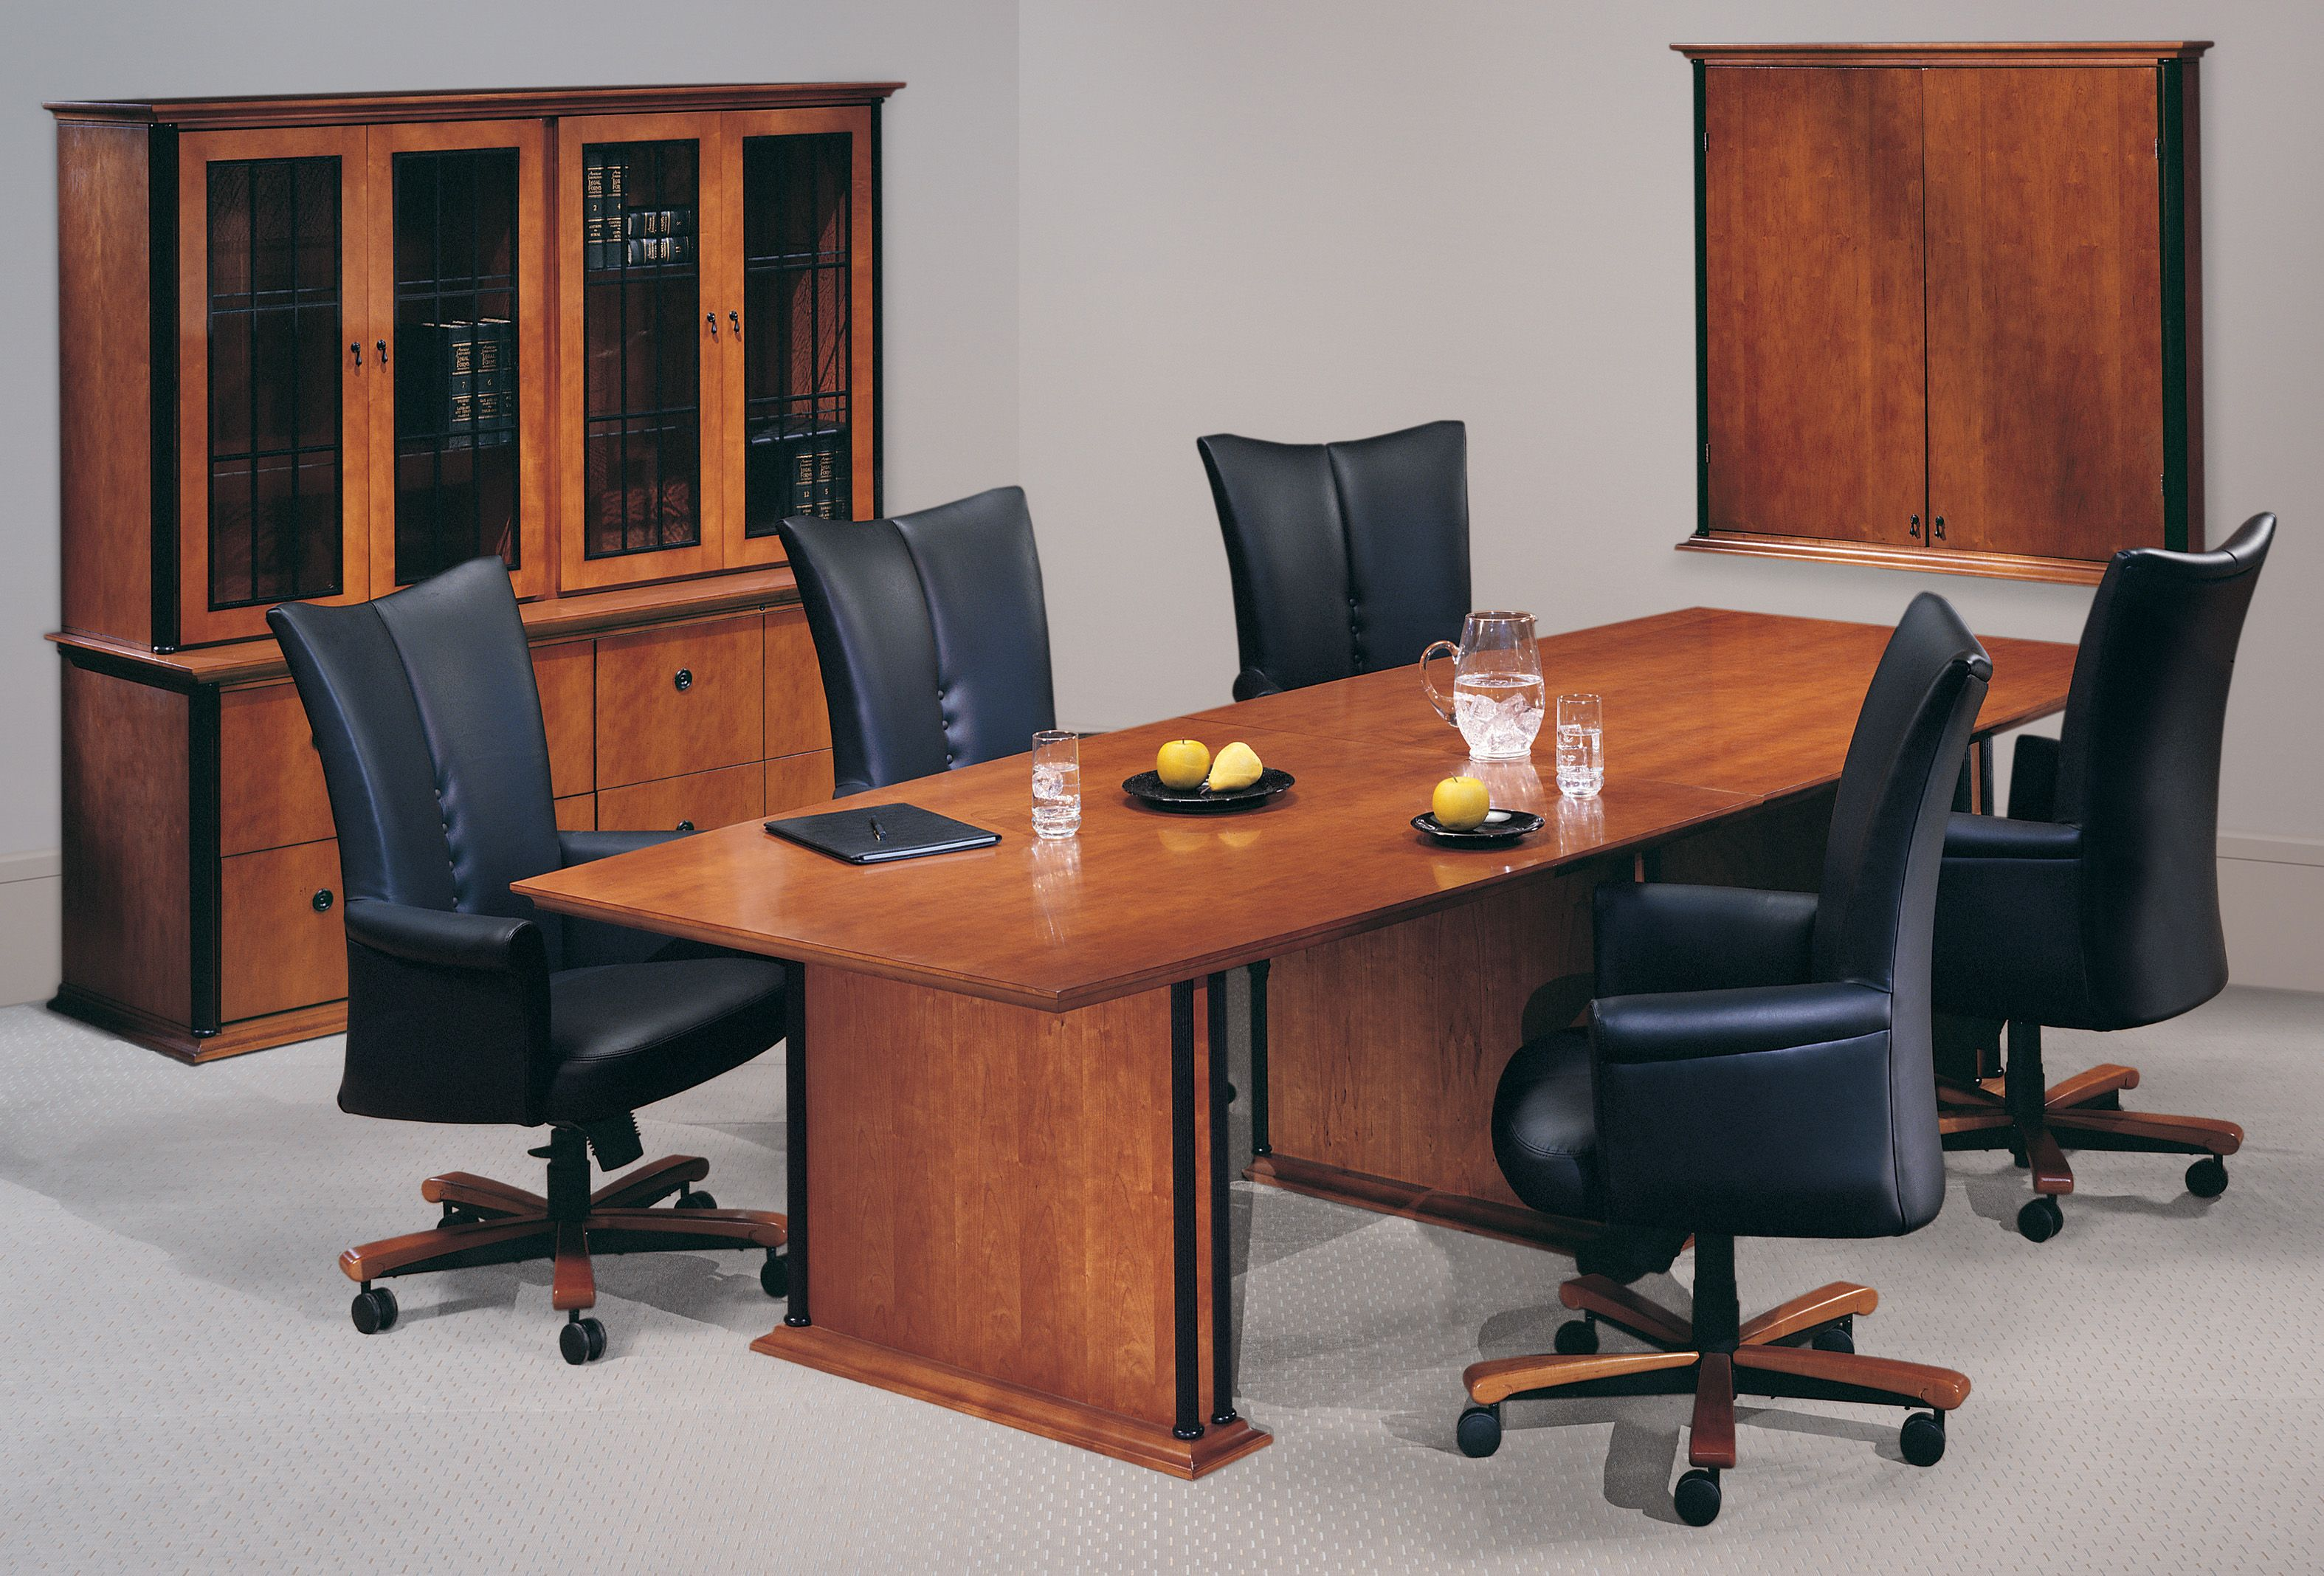 The Office Manufacturers In India Cater To Both Residential As Well